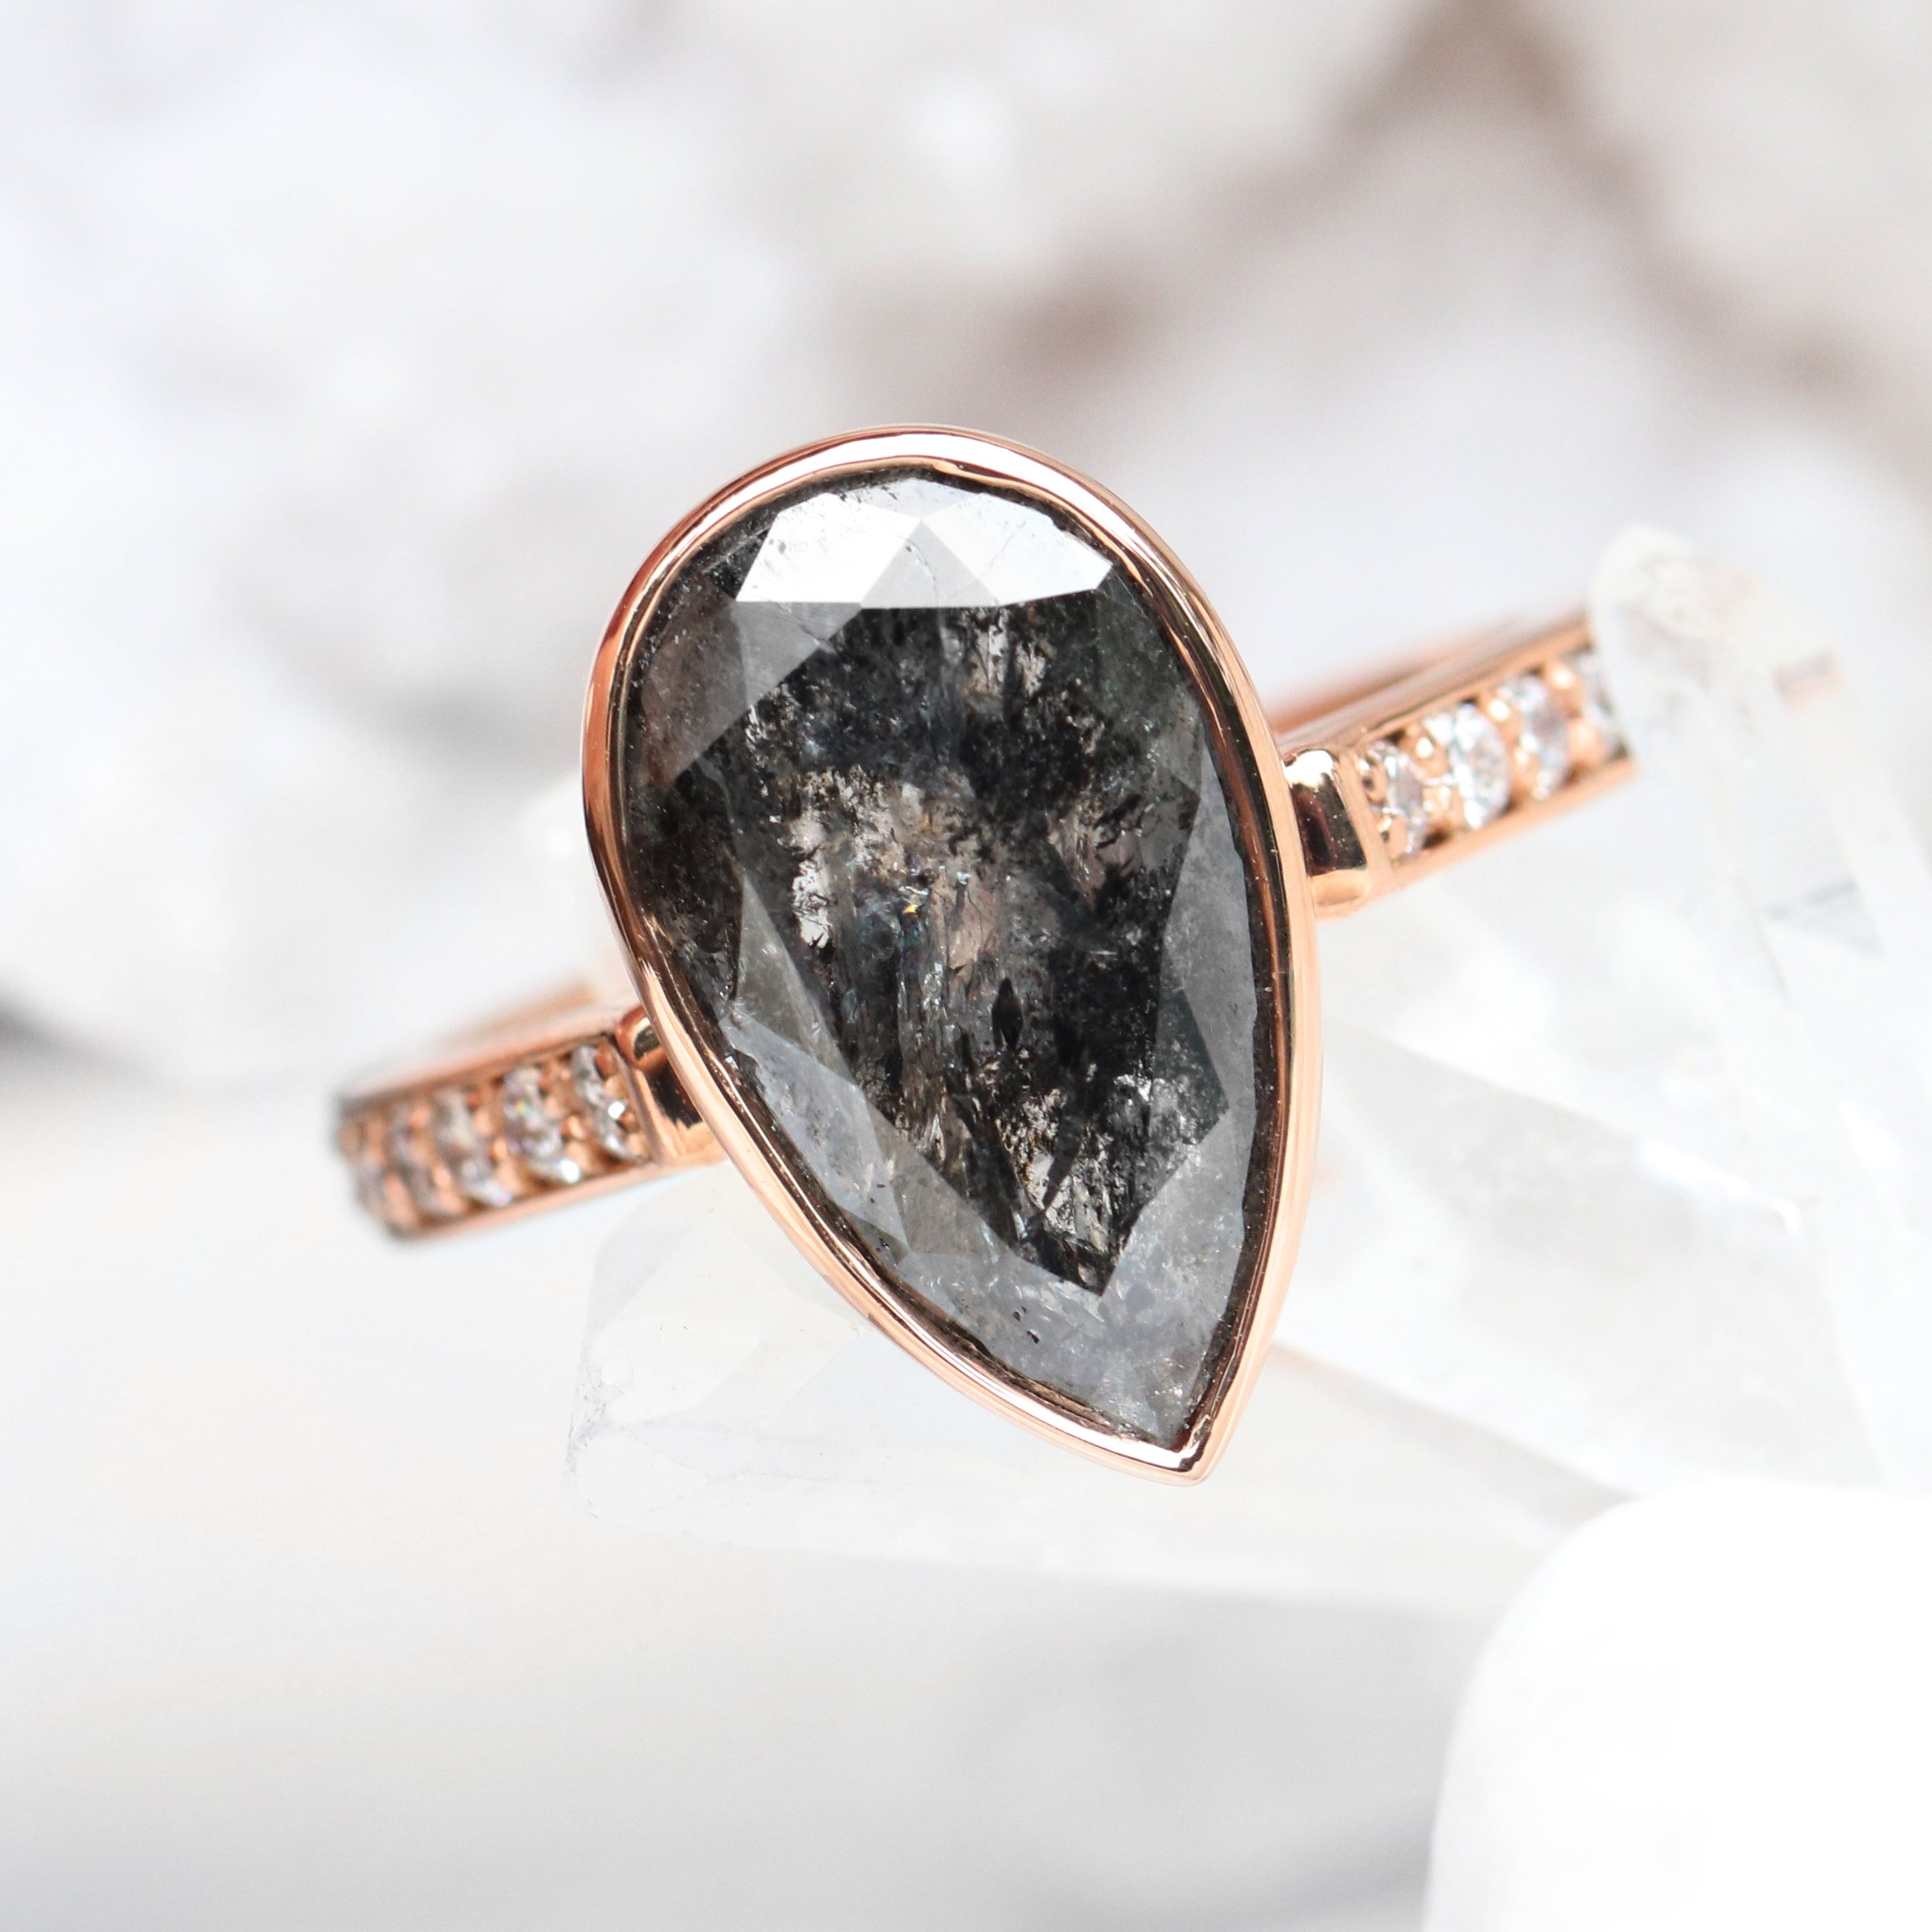 Corie Ring bezel 4.39 carat black Celestial Pear Diamond - Ready to Size and Ship - Salt & Pepper Celestial Diamond Engagement Rings and Wedding Bands  by Midwinter Co.